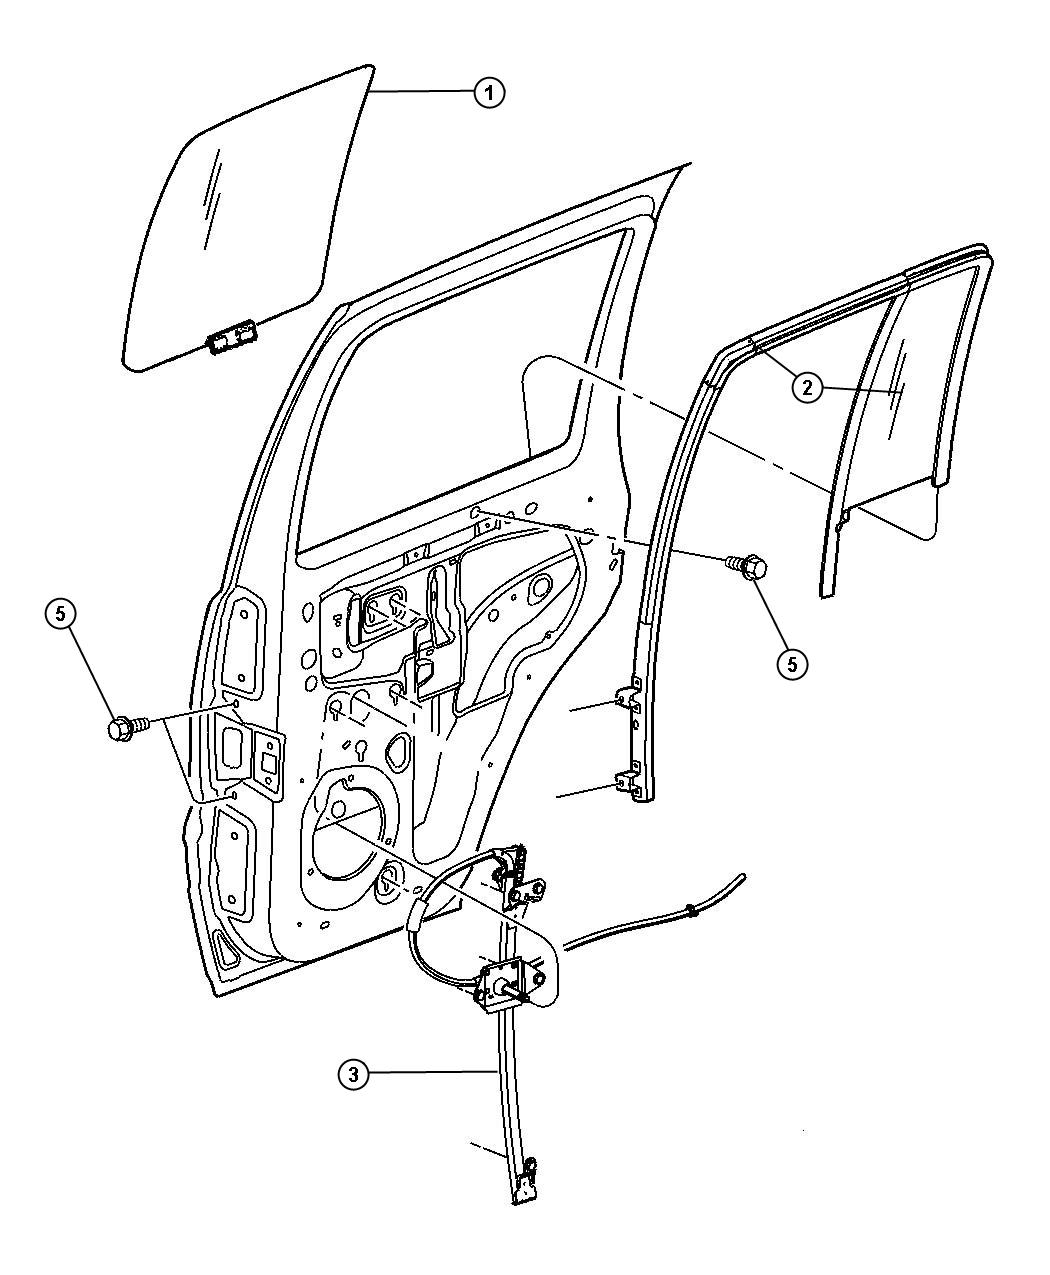 door rear glass and regulator for 2002 jeep liberty. Cars Review. Best American Auto & Cars Review